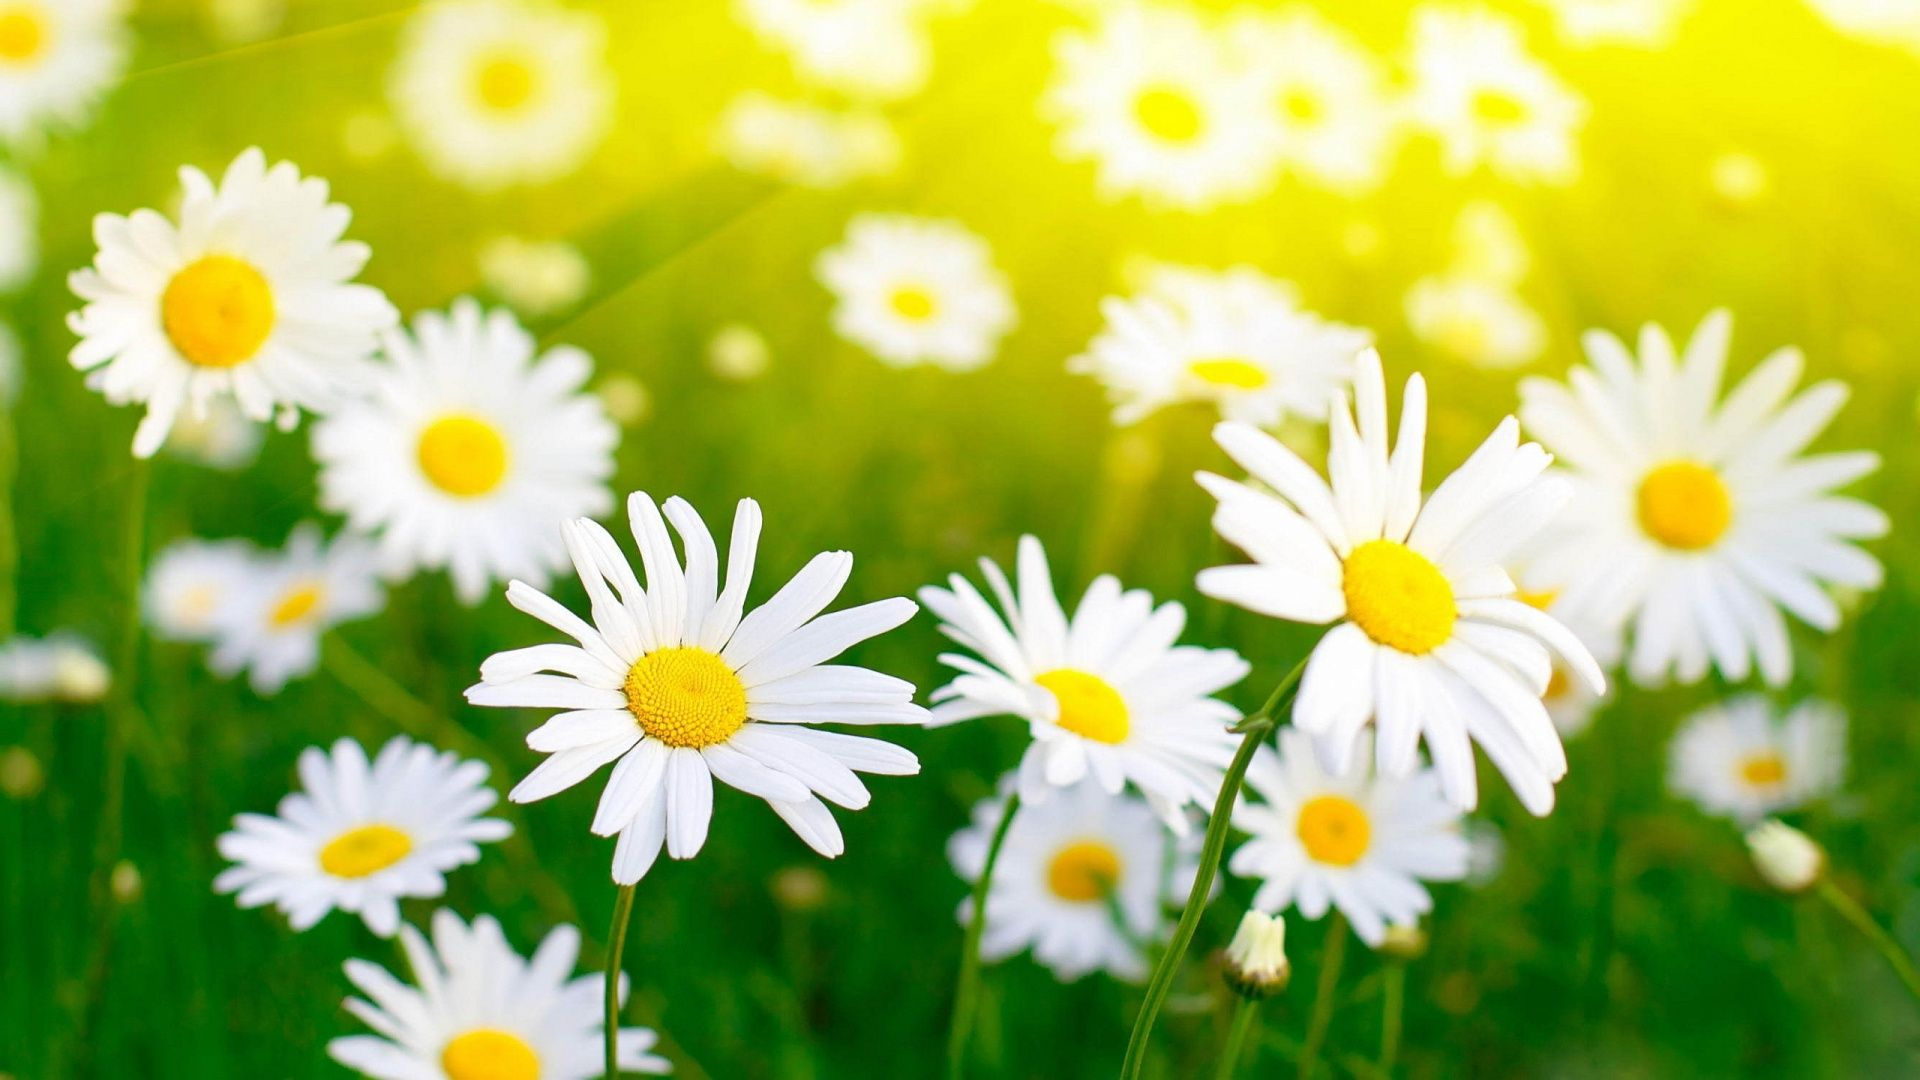 What Your Favorite Flower Says About You Flower pictures